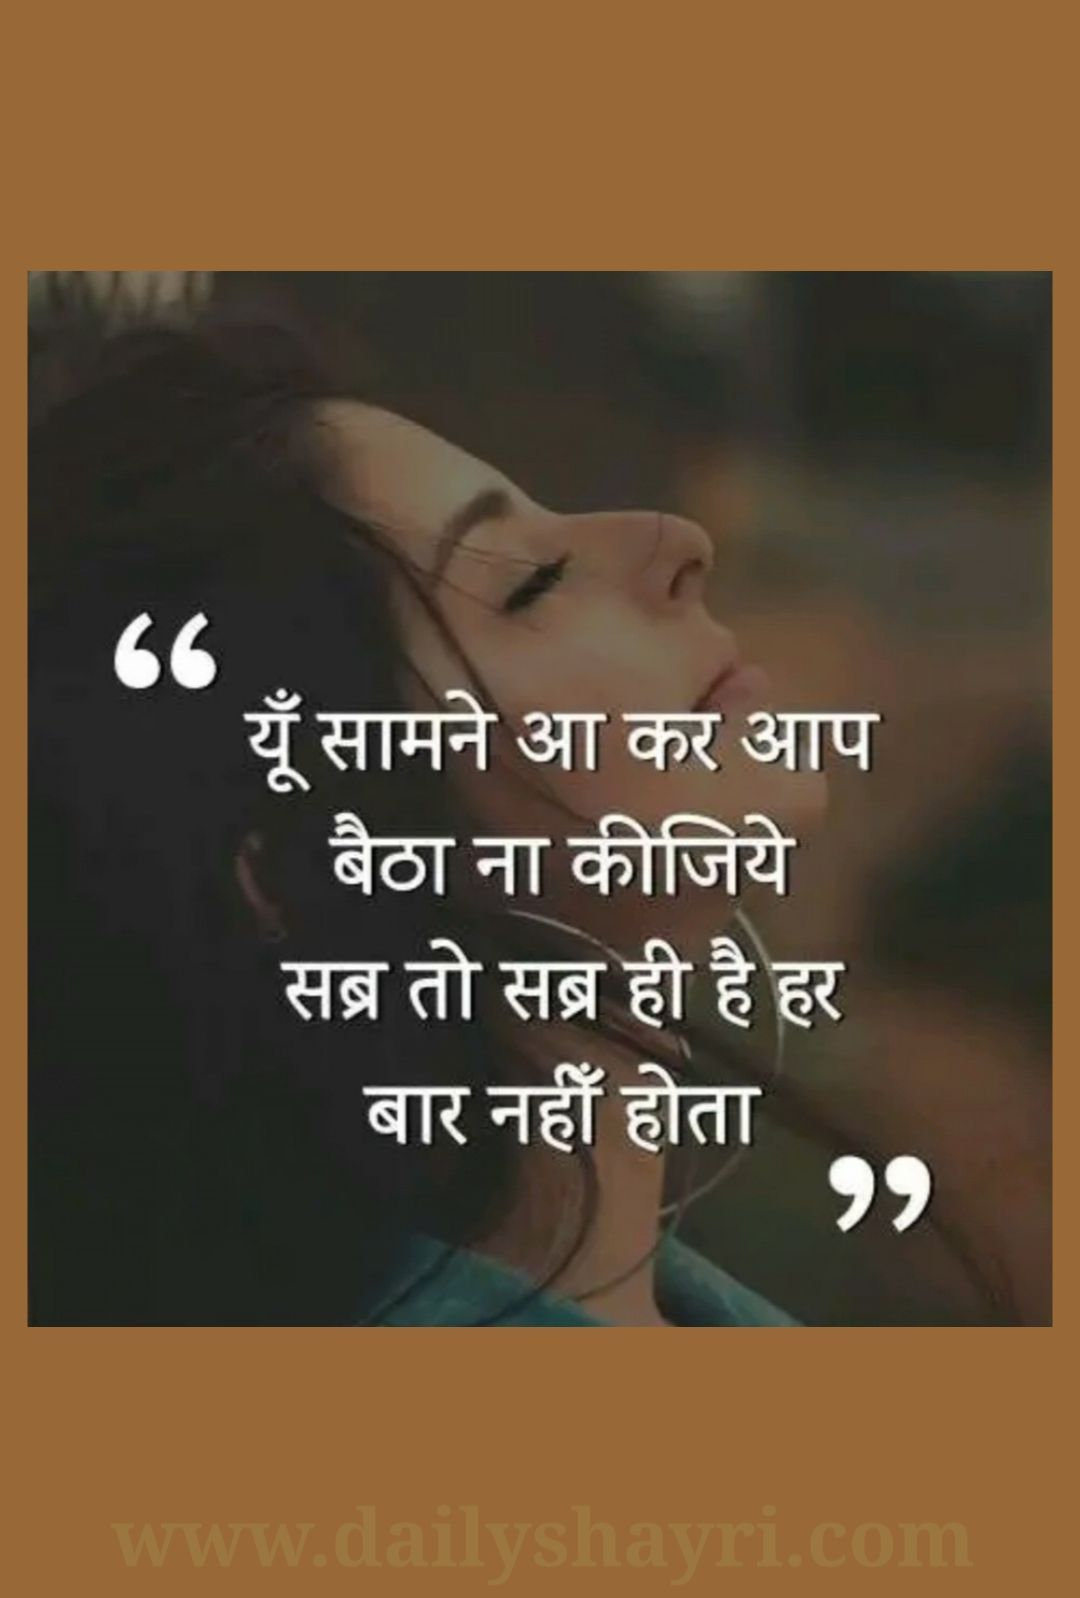 Bewafa Quotes : bewafa, quotes, Bewafa, Shayari, Hindi, Girlfriend, Romantic, Quotes, Girlfriend,, Quotes,